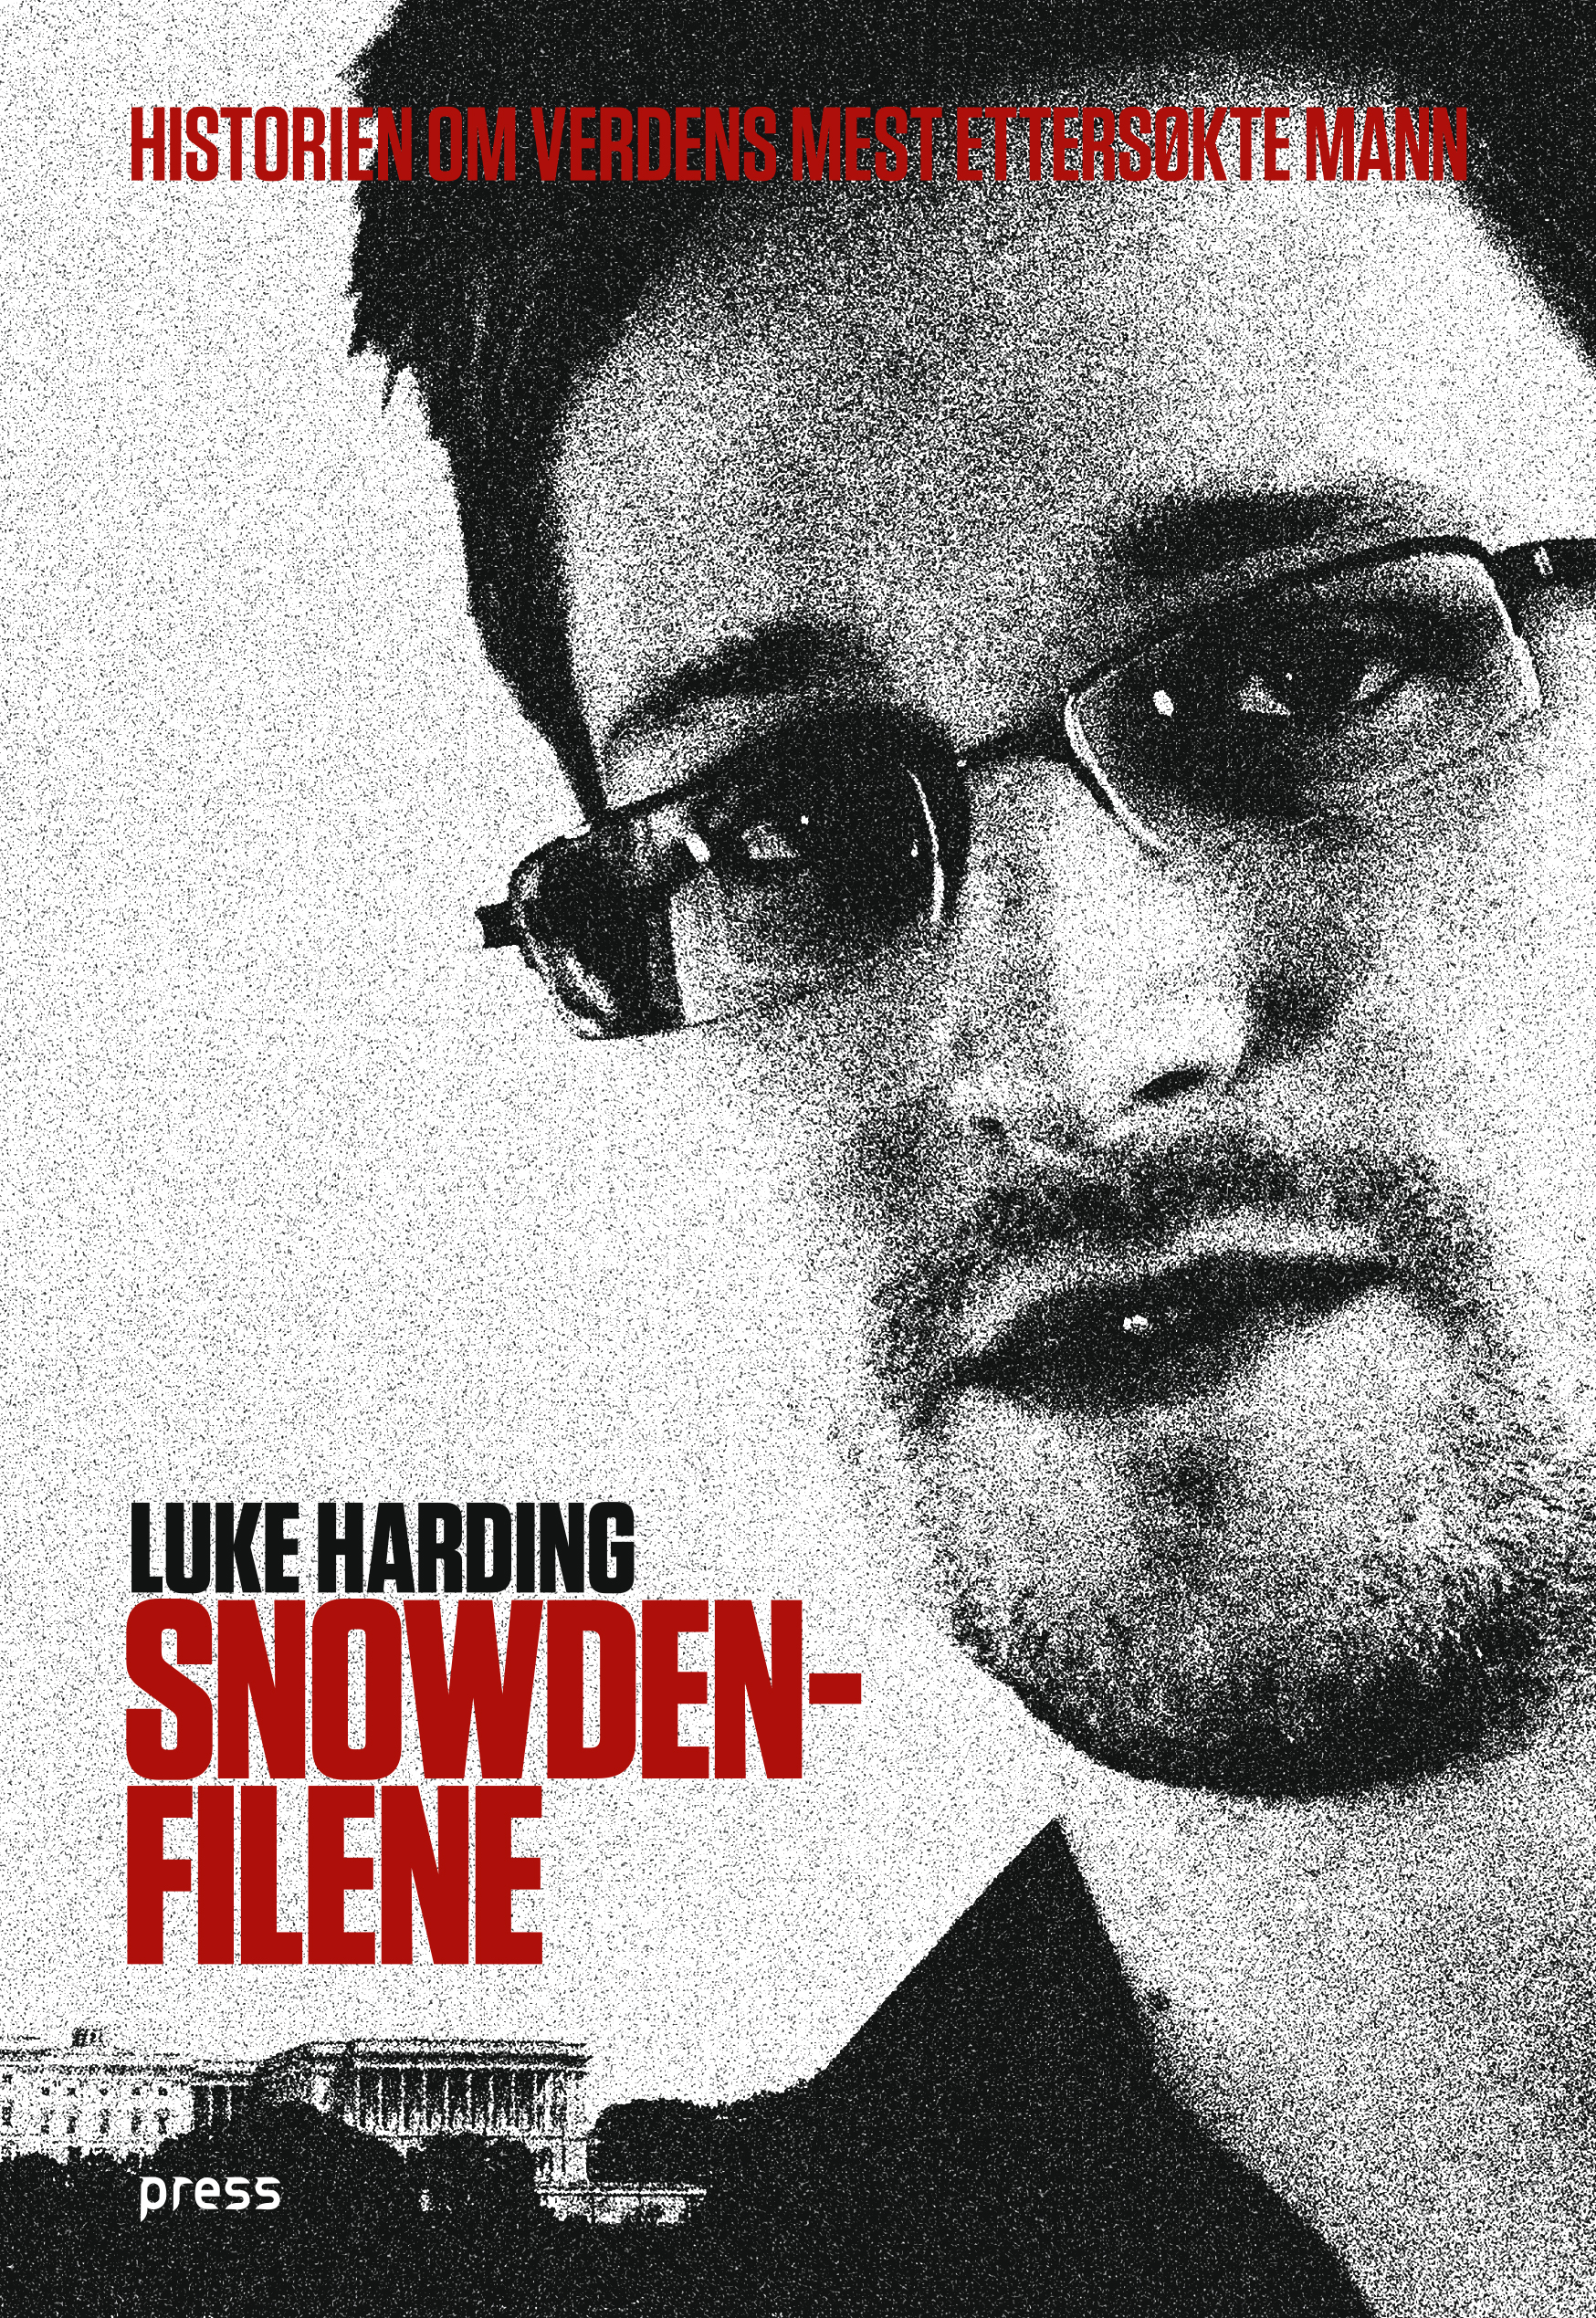 Snowden filene